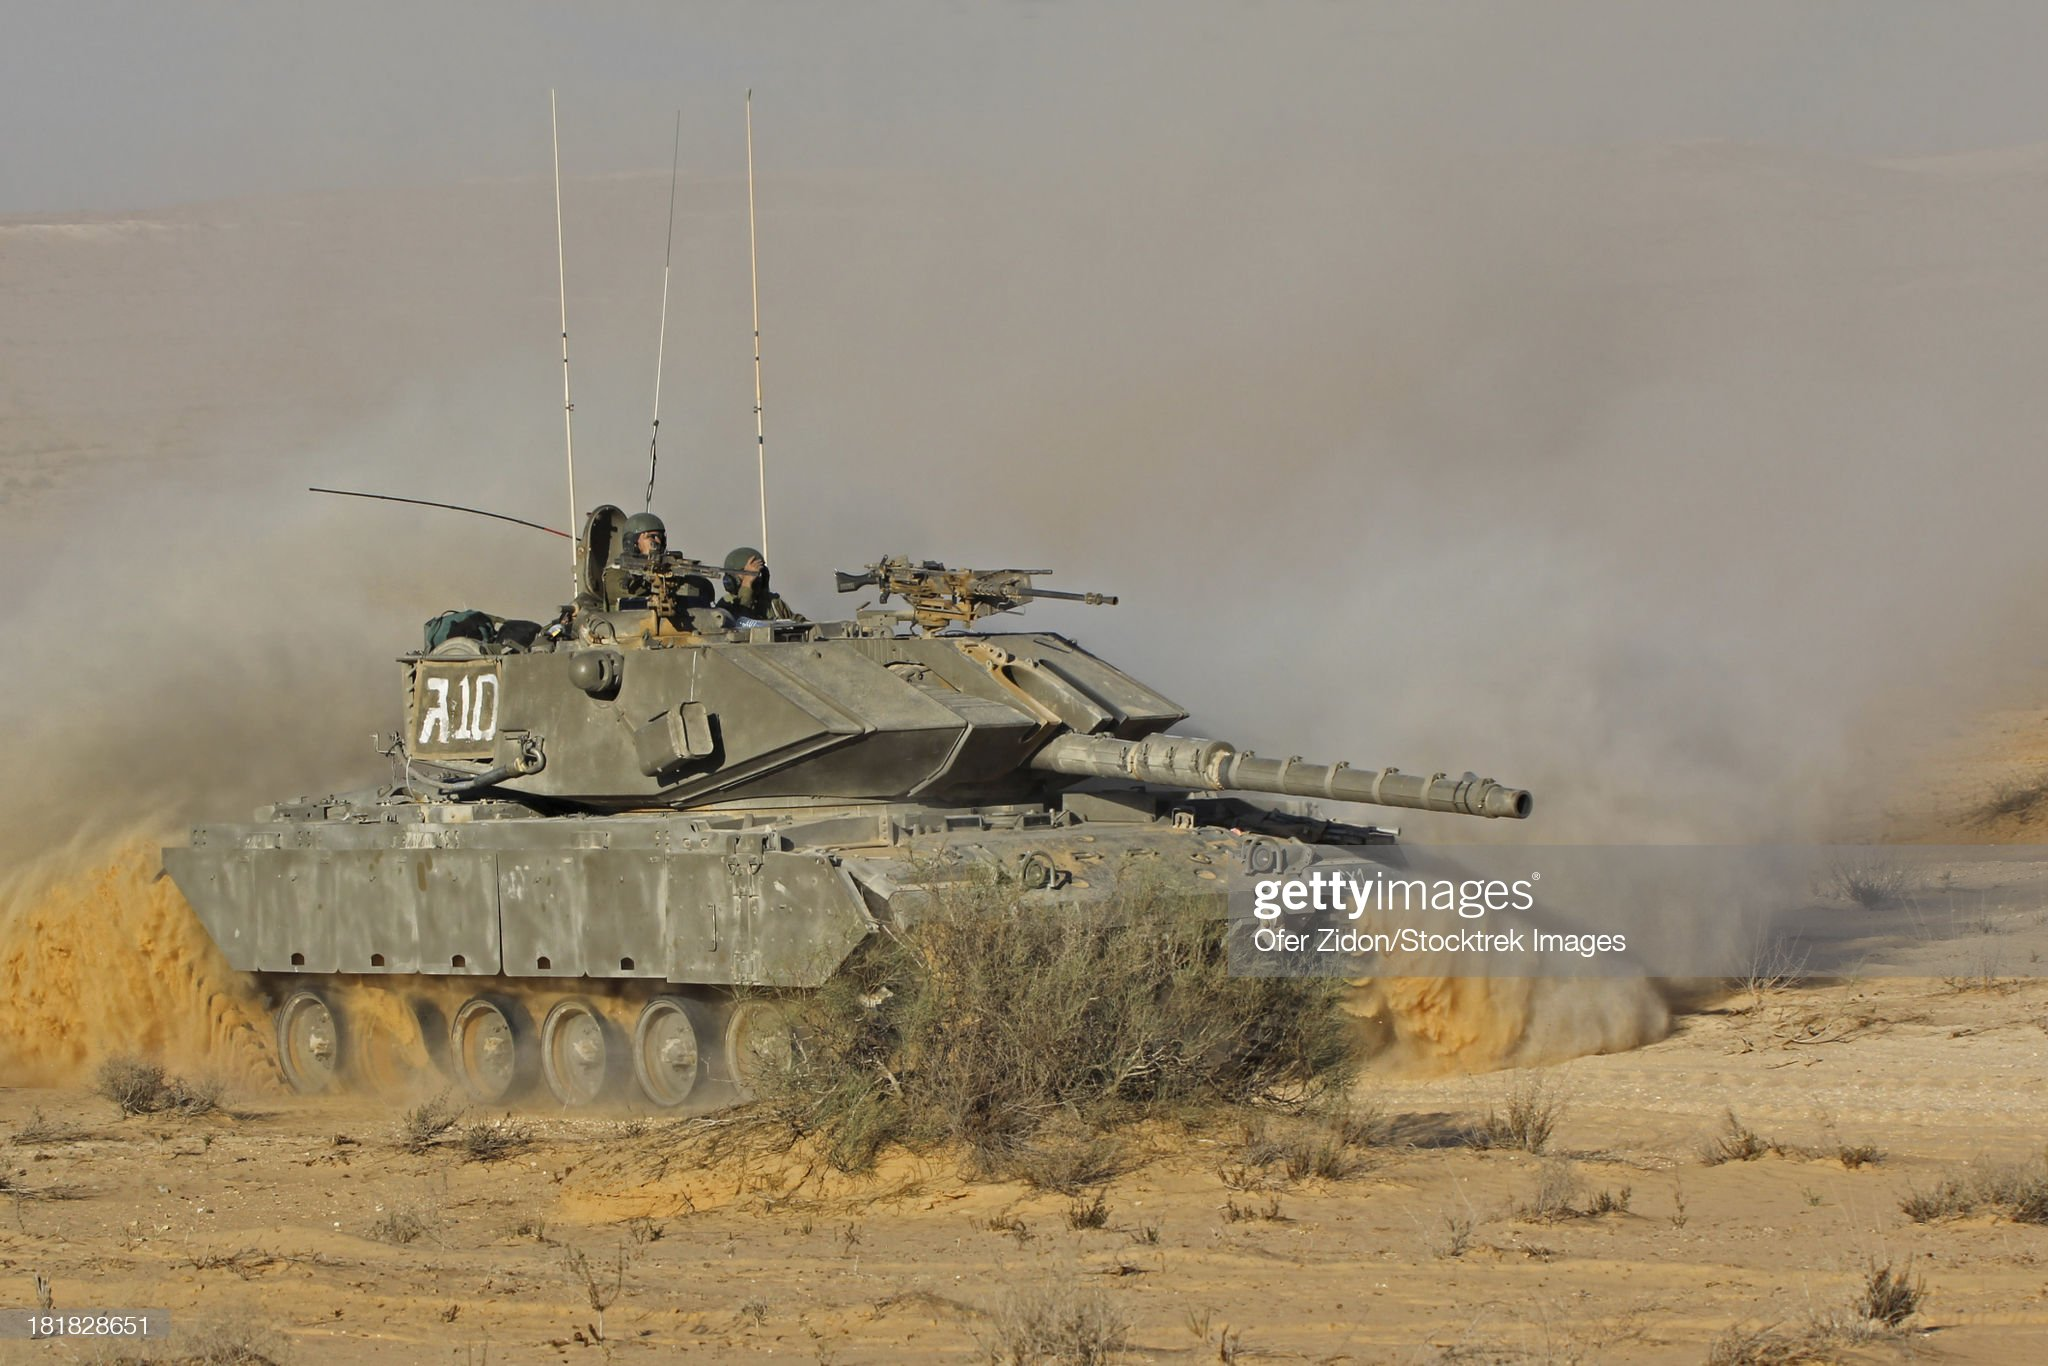 https://media.gettyimages.com/photos/an-israel-defense-force-magach-7-main-battle-tank-during-an-exercise-picture-id181828651?s=2048x2048